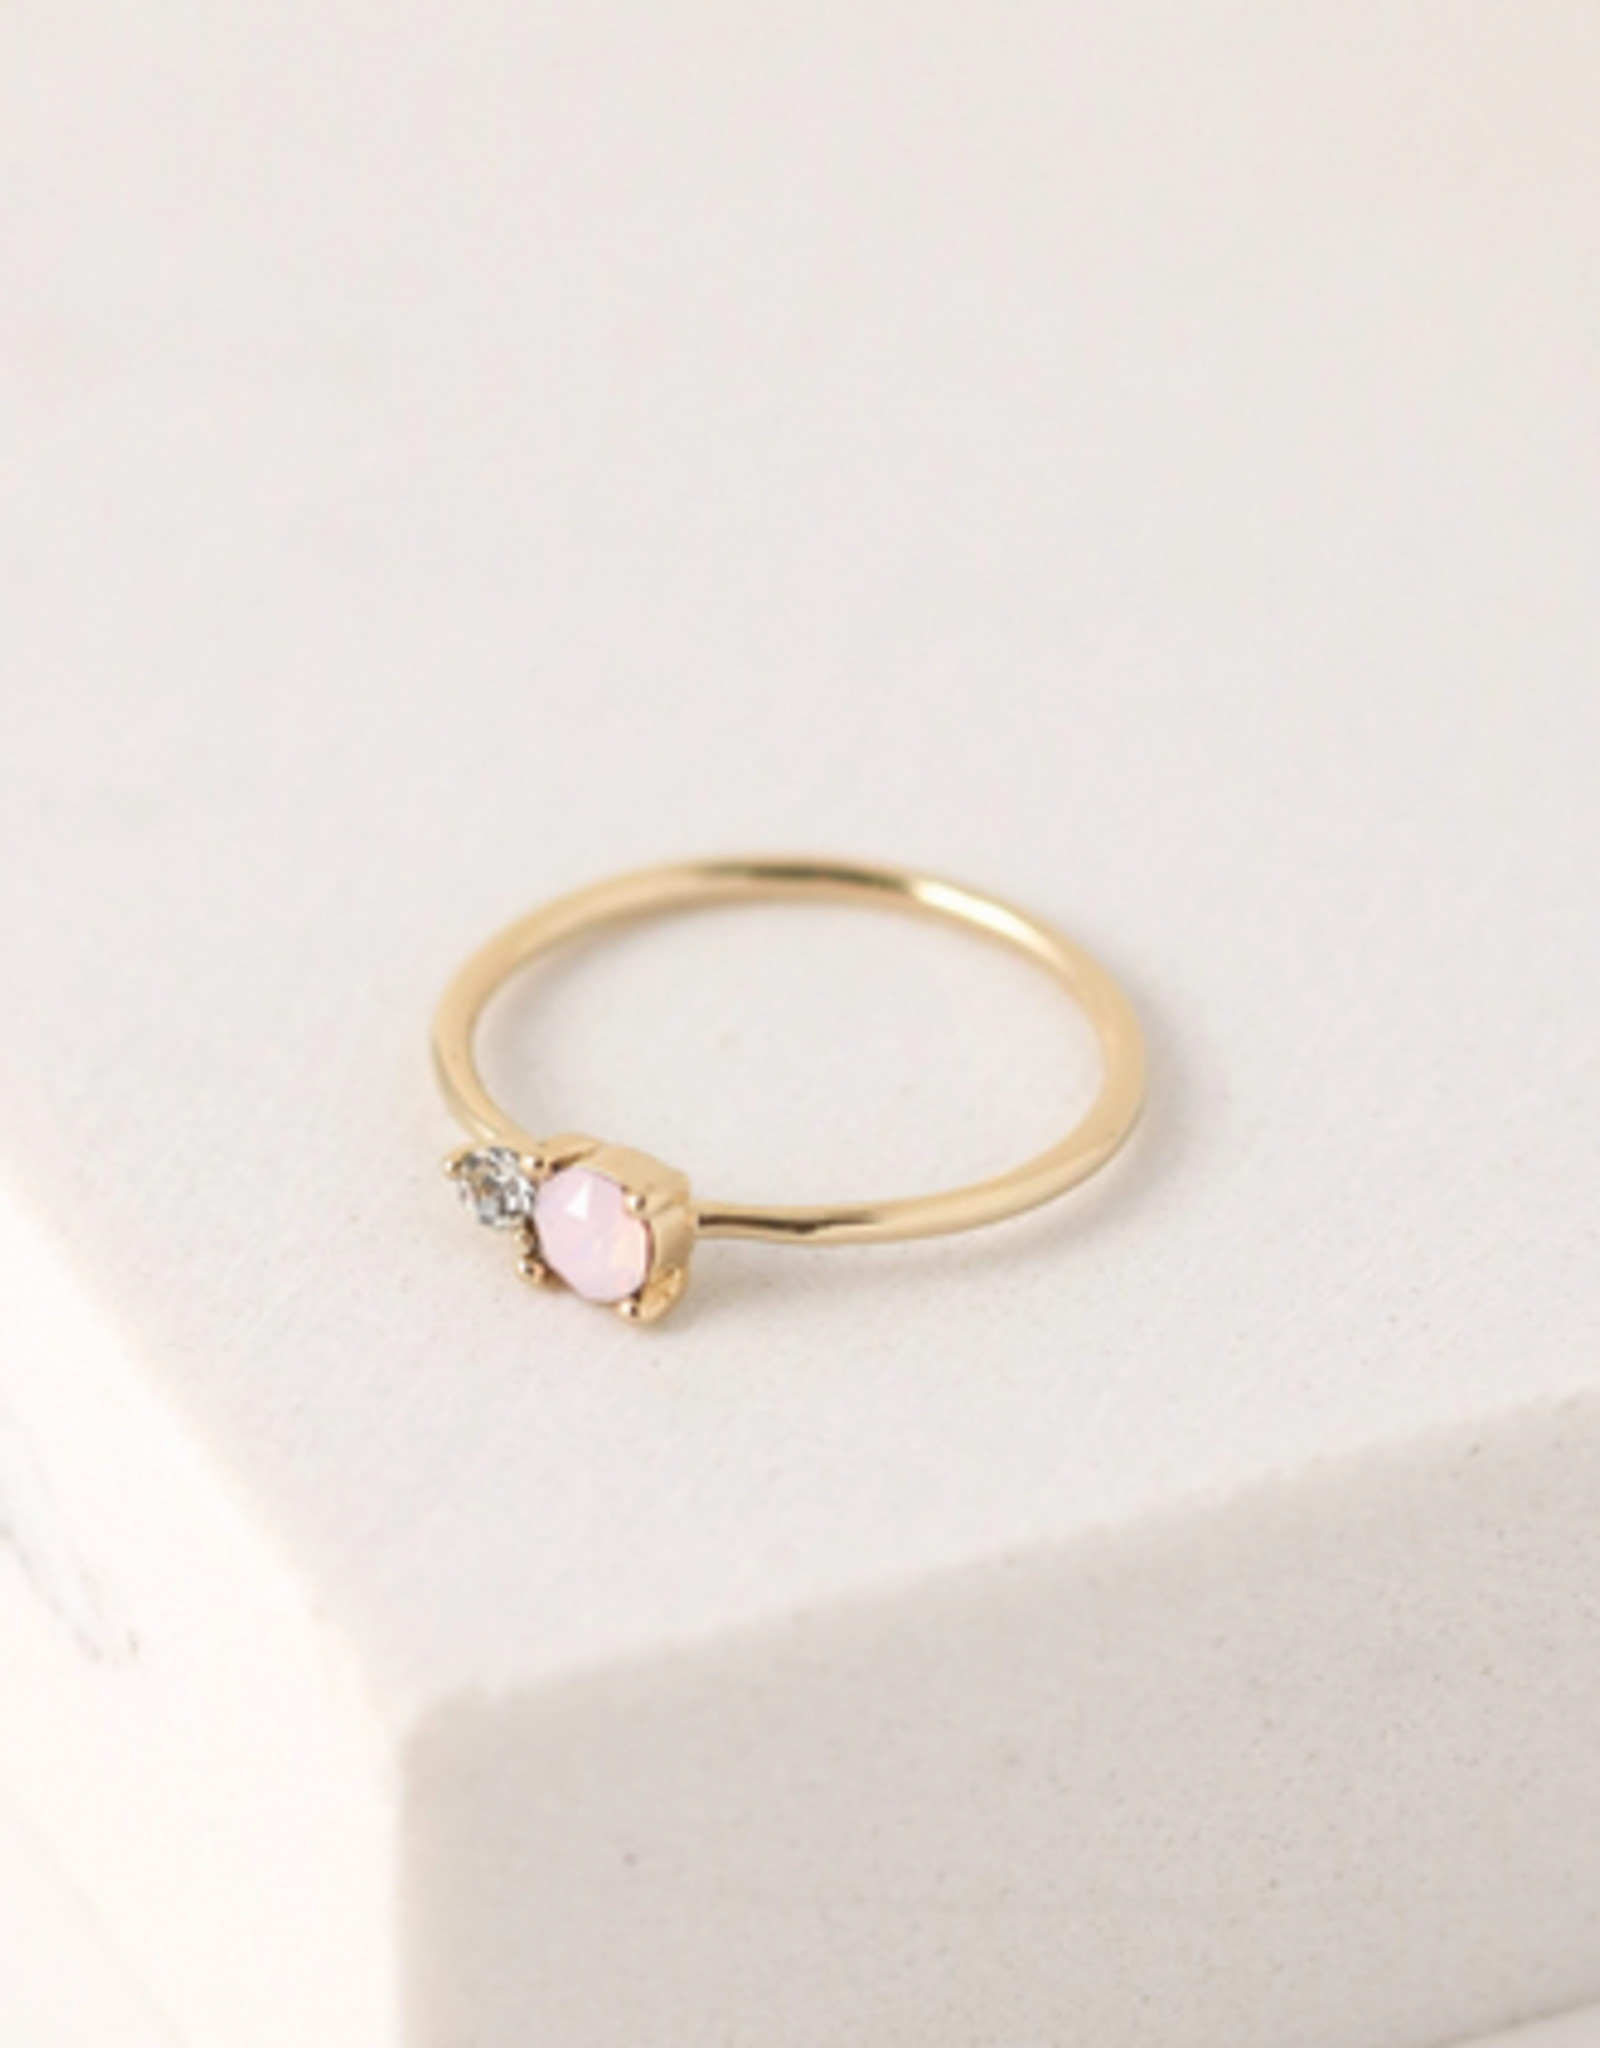 Dolce Ring Size 6- Pink Opal